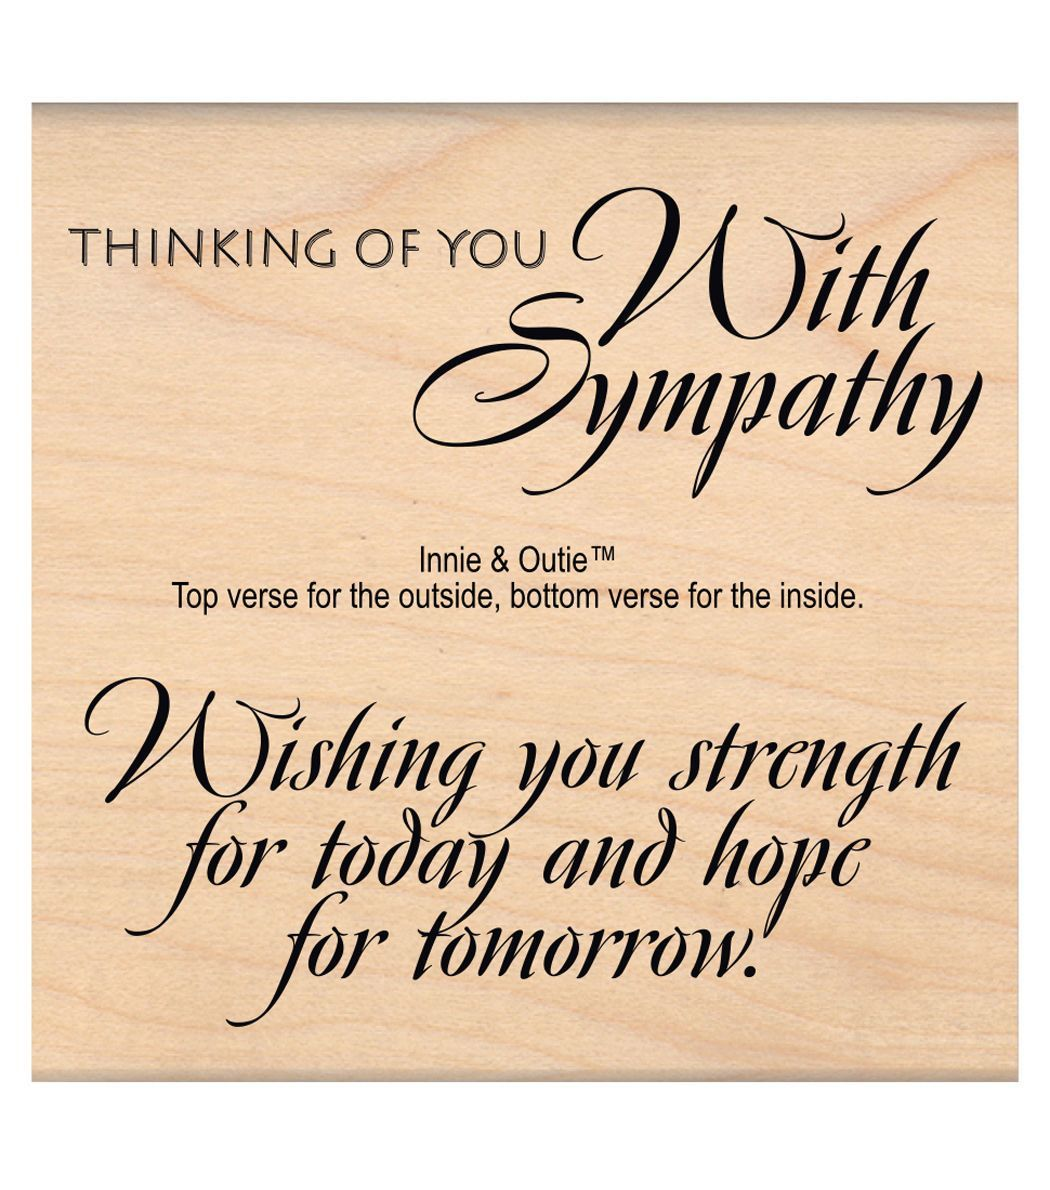 Mse My Sentiments Exactly Strength Hope Mounted Stamp 3 X3 25 Joann Sympathy Card Sayings Card Sayings Sympathy Quotes